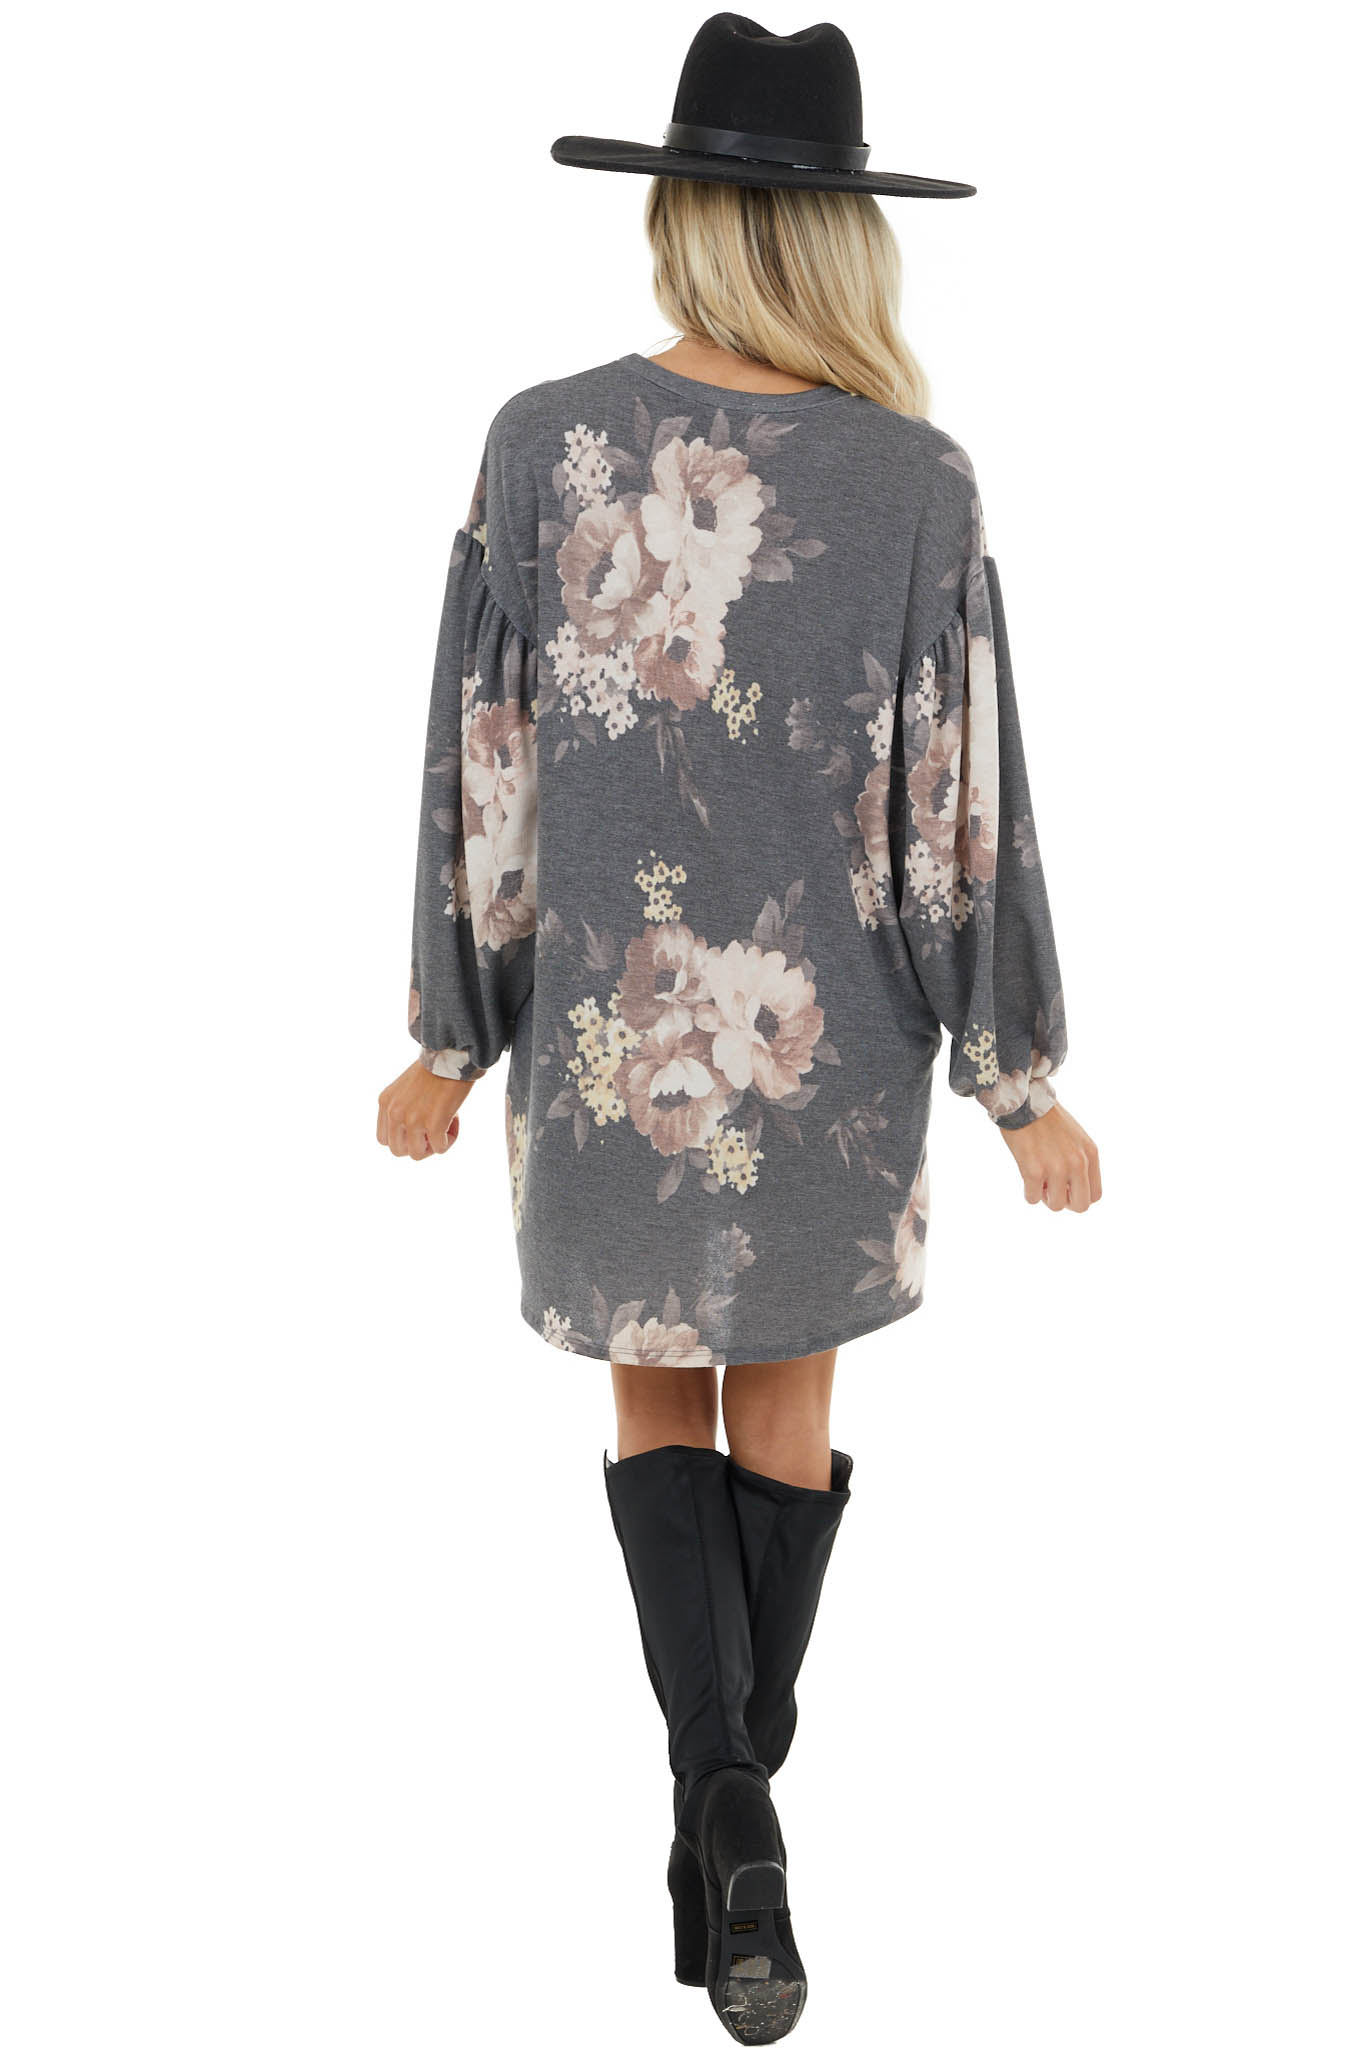 Stone and Mauve Floral Print Dress with Bubble Long Sleeves